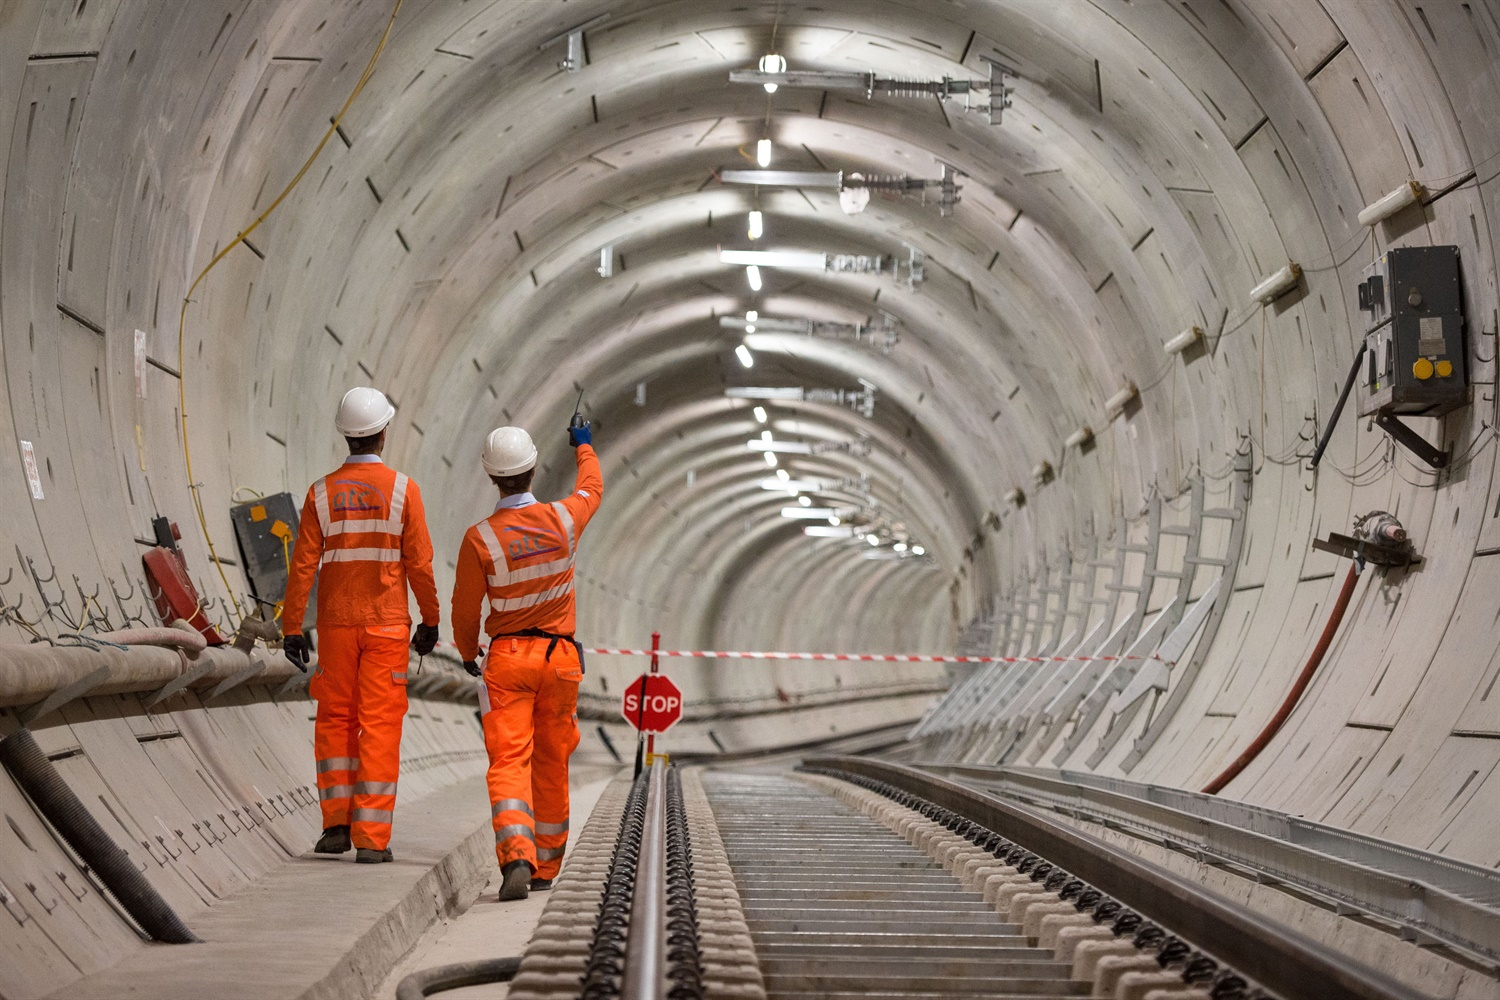 TfL admits 'disappointing' Elizabeth Line progress but restates commitment to delivering Crossrail 2